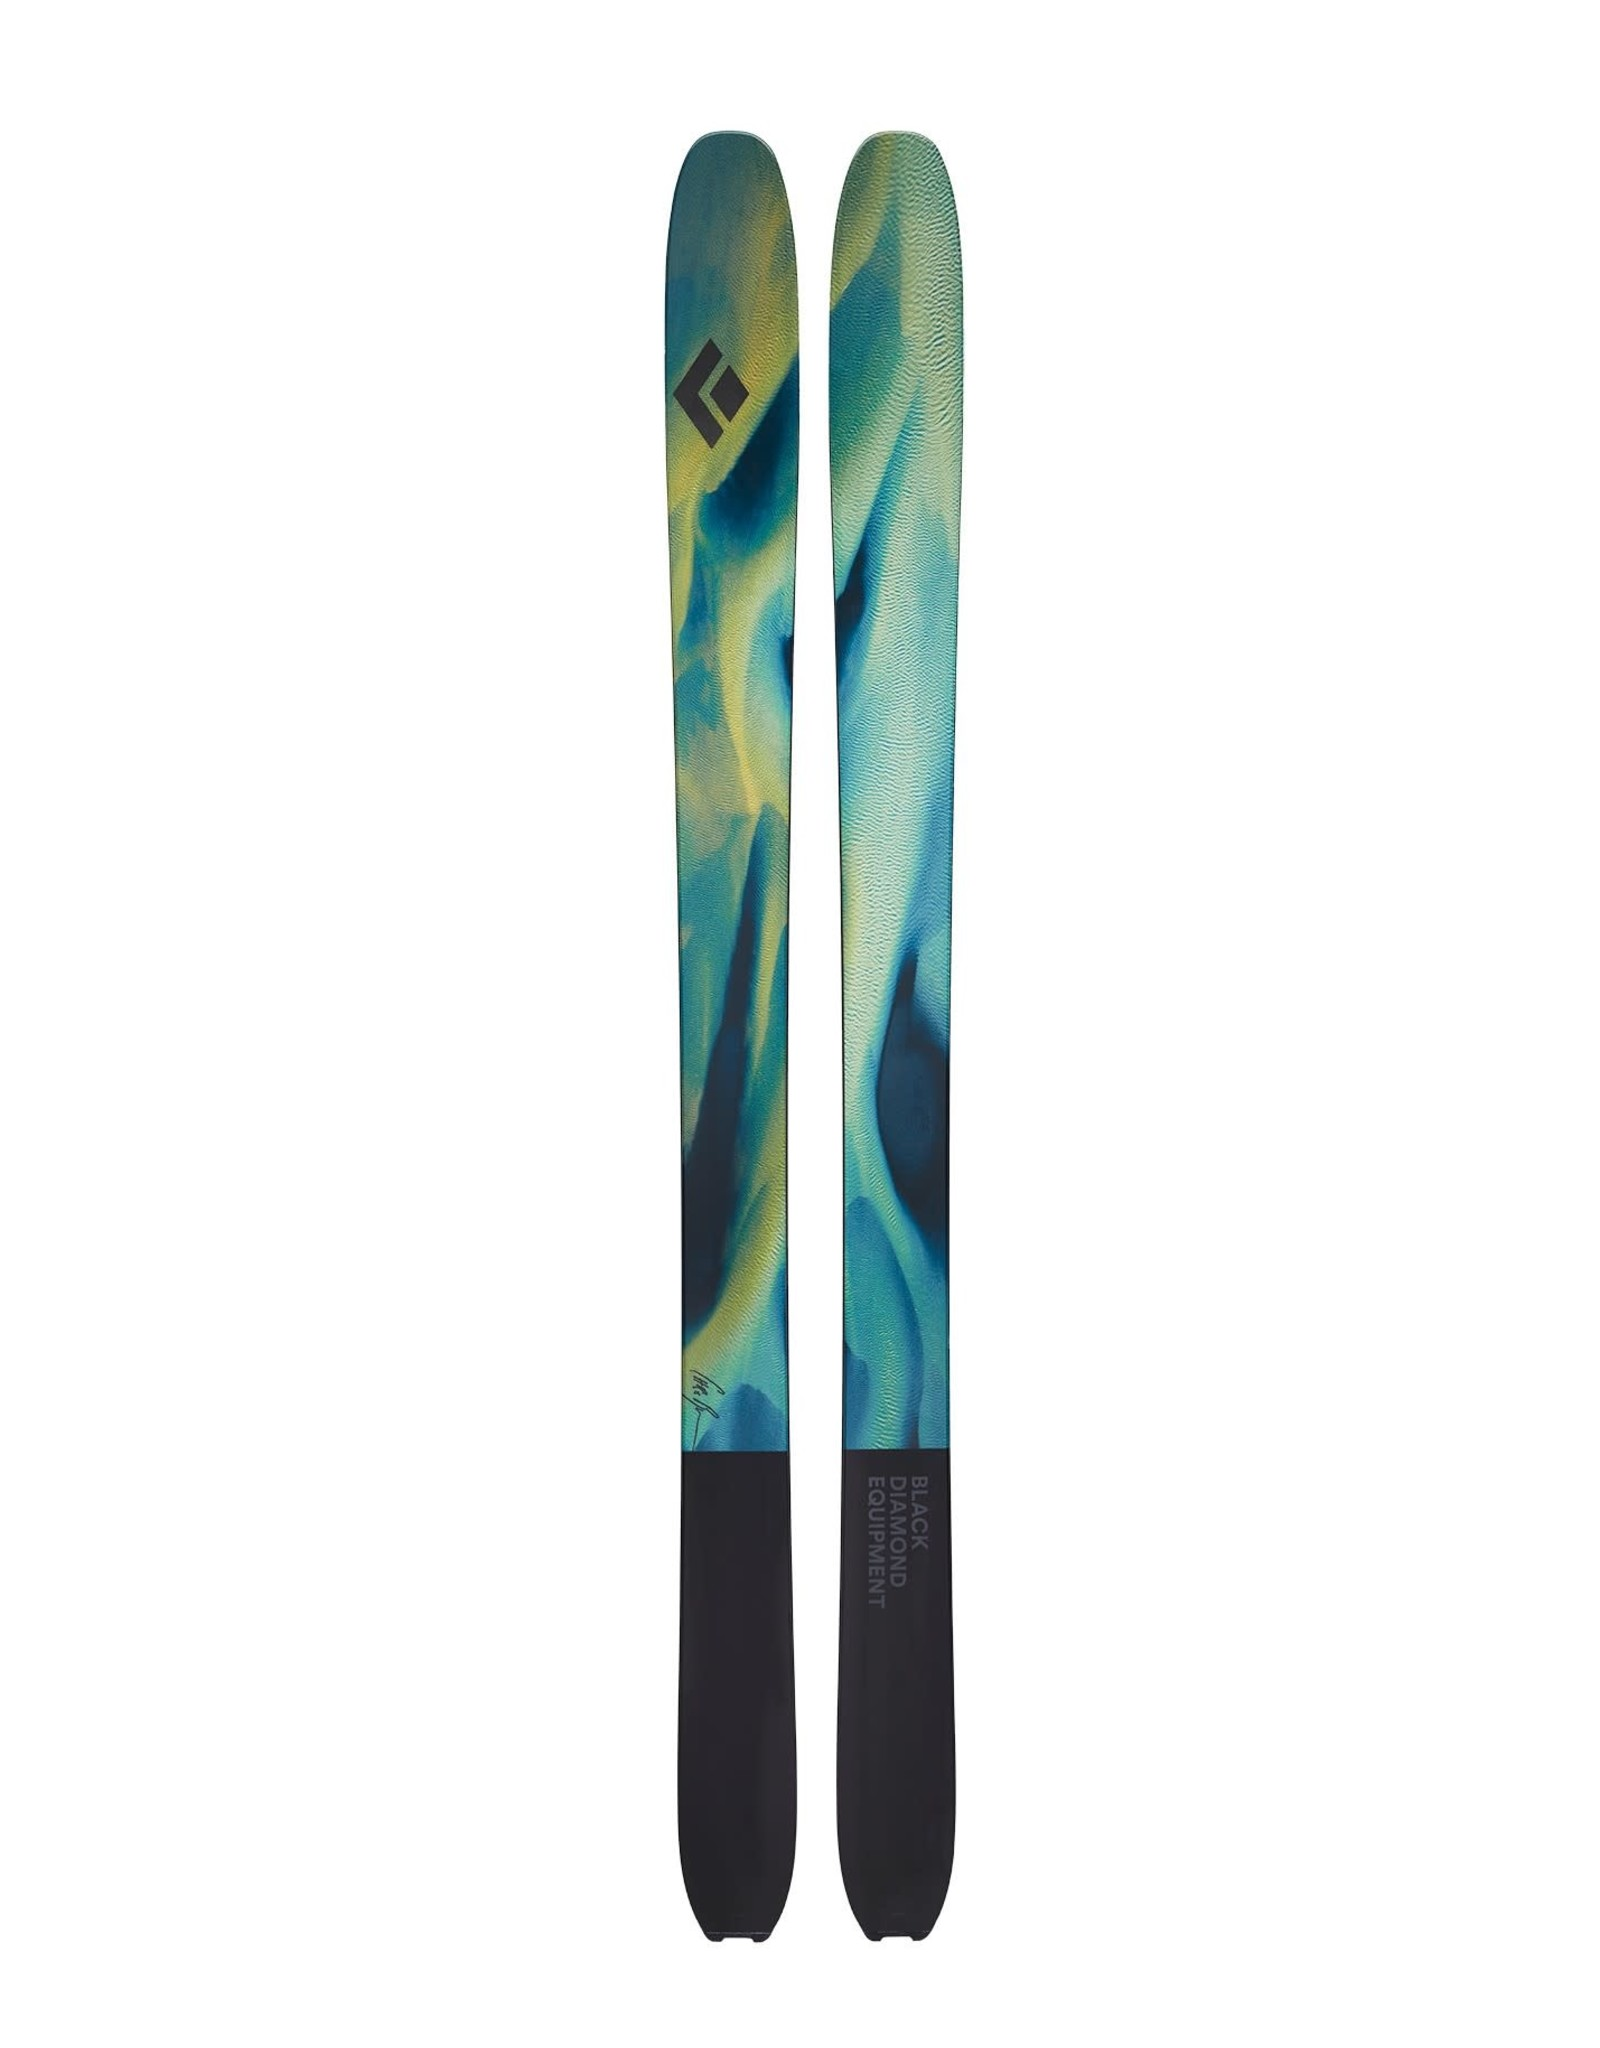 Black Diamond Black Diamond Helio Recon 105 Ski